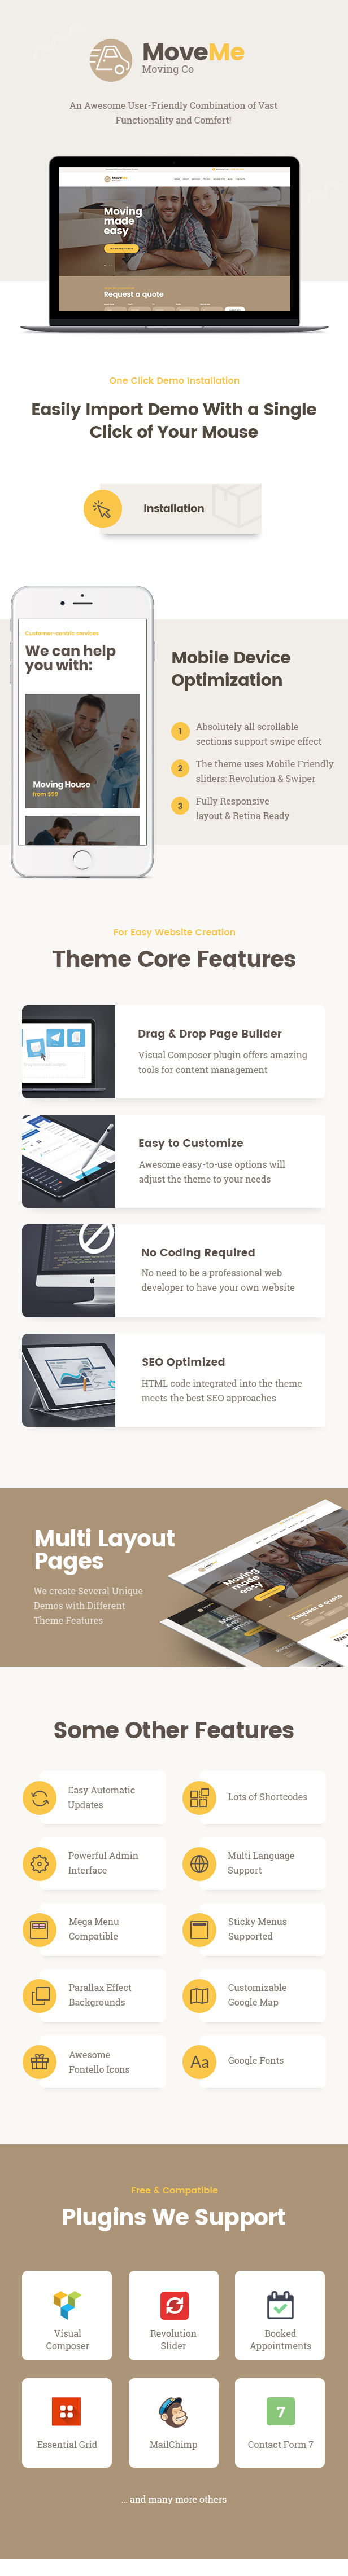 MoveMe | Moving & Storage Company WordPress Theme - 1